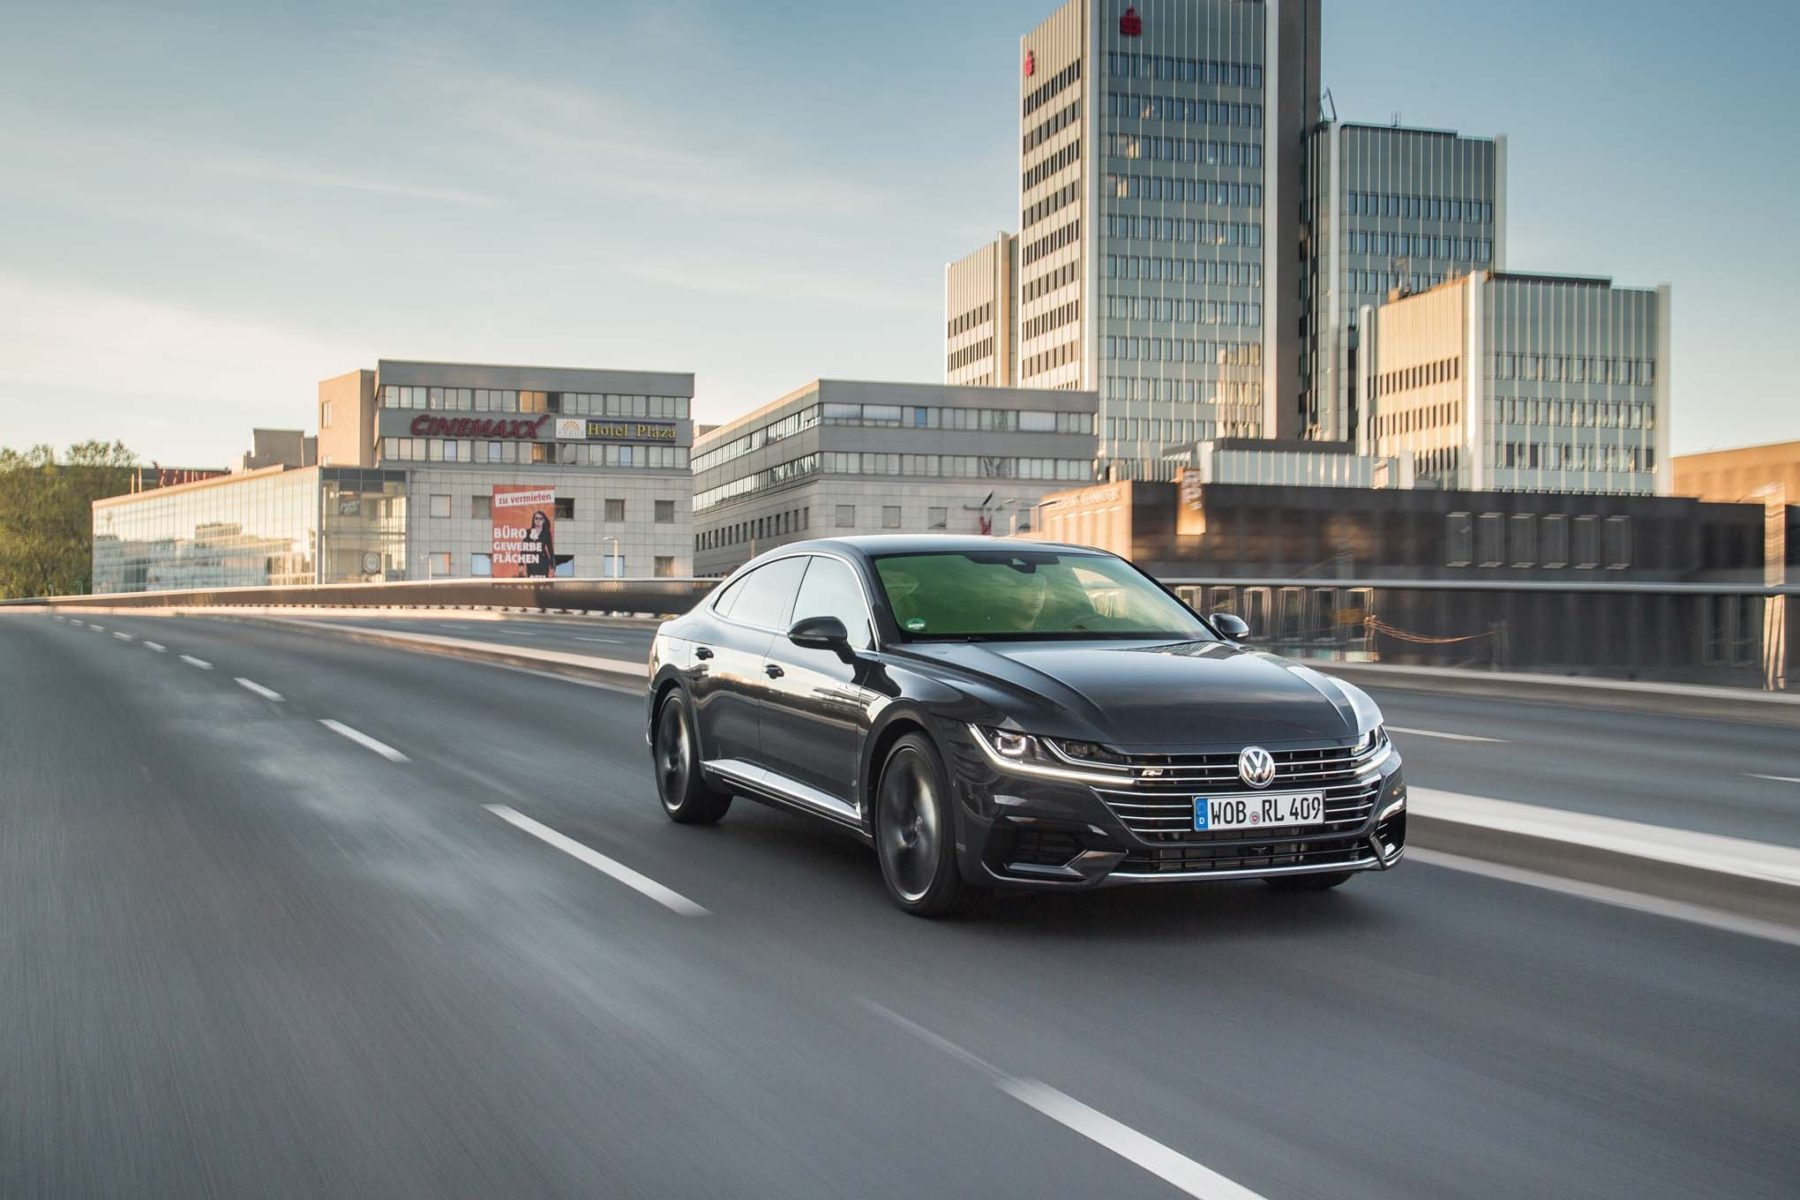 1800x1200 - Volkswagen Arteon Wallpapers 24